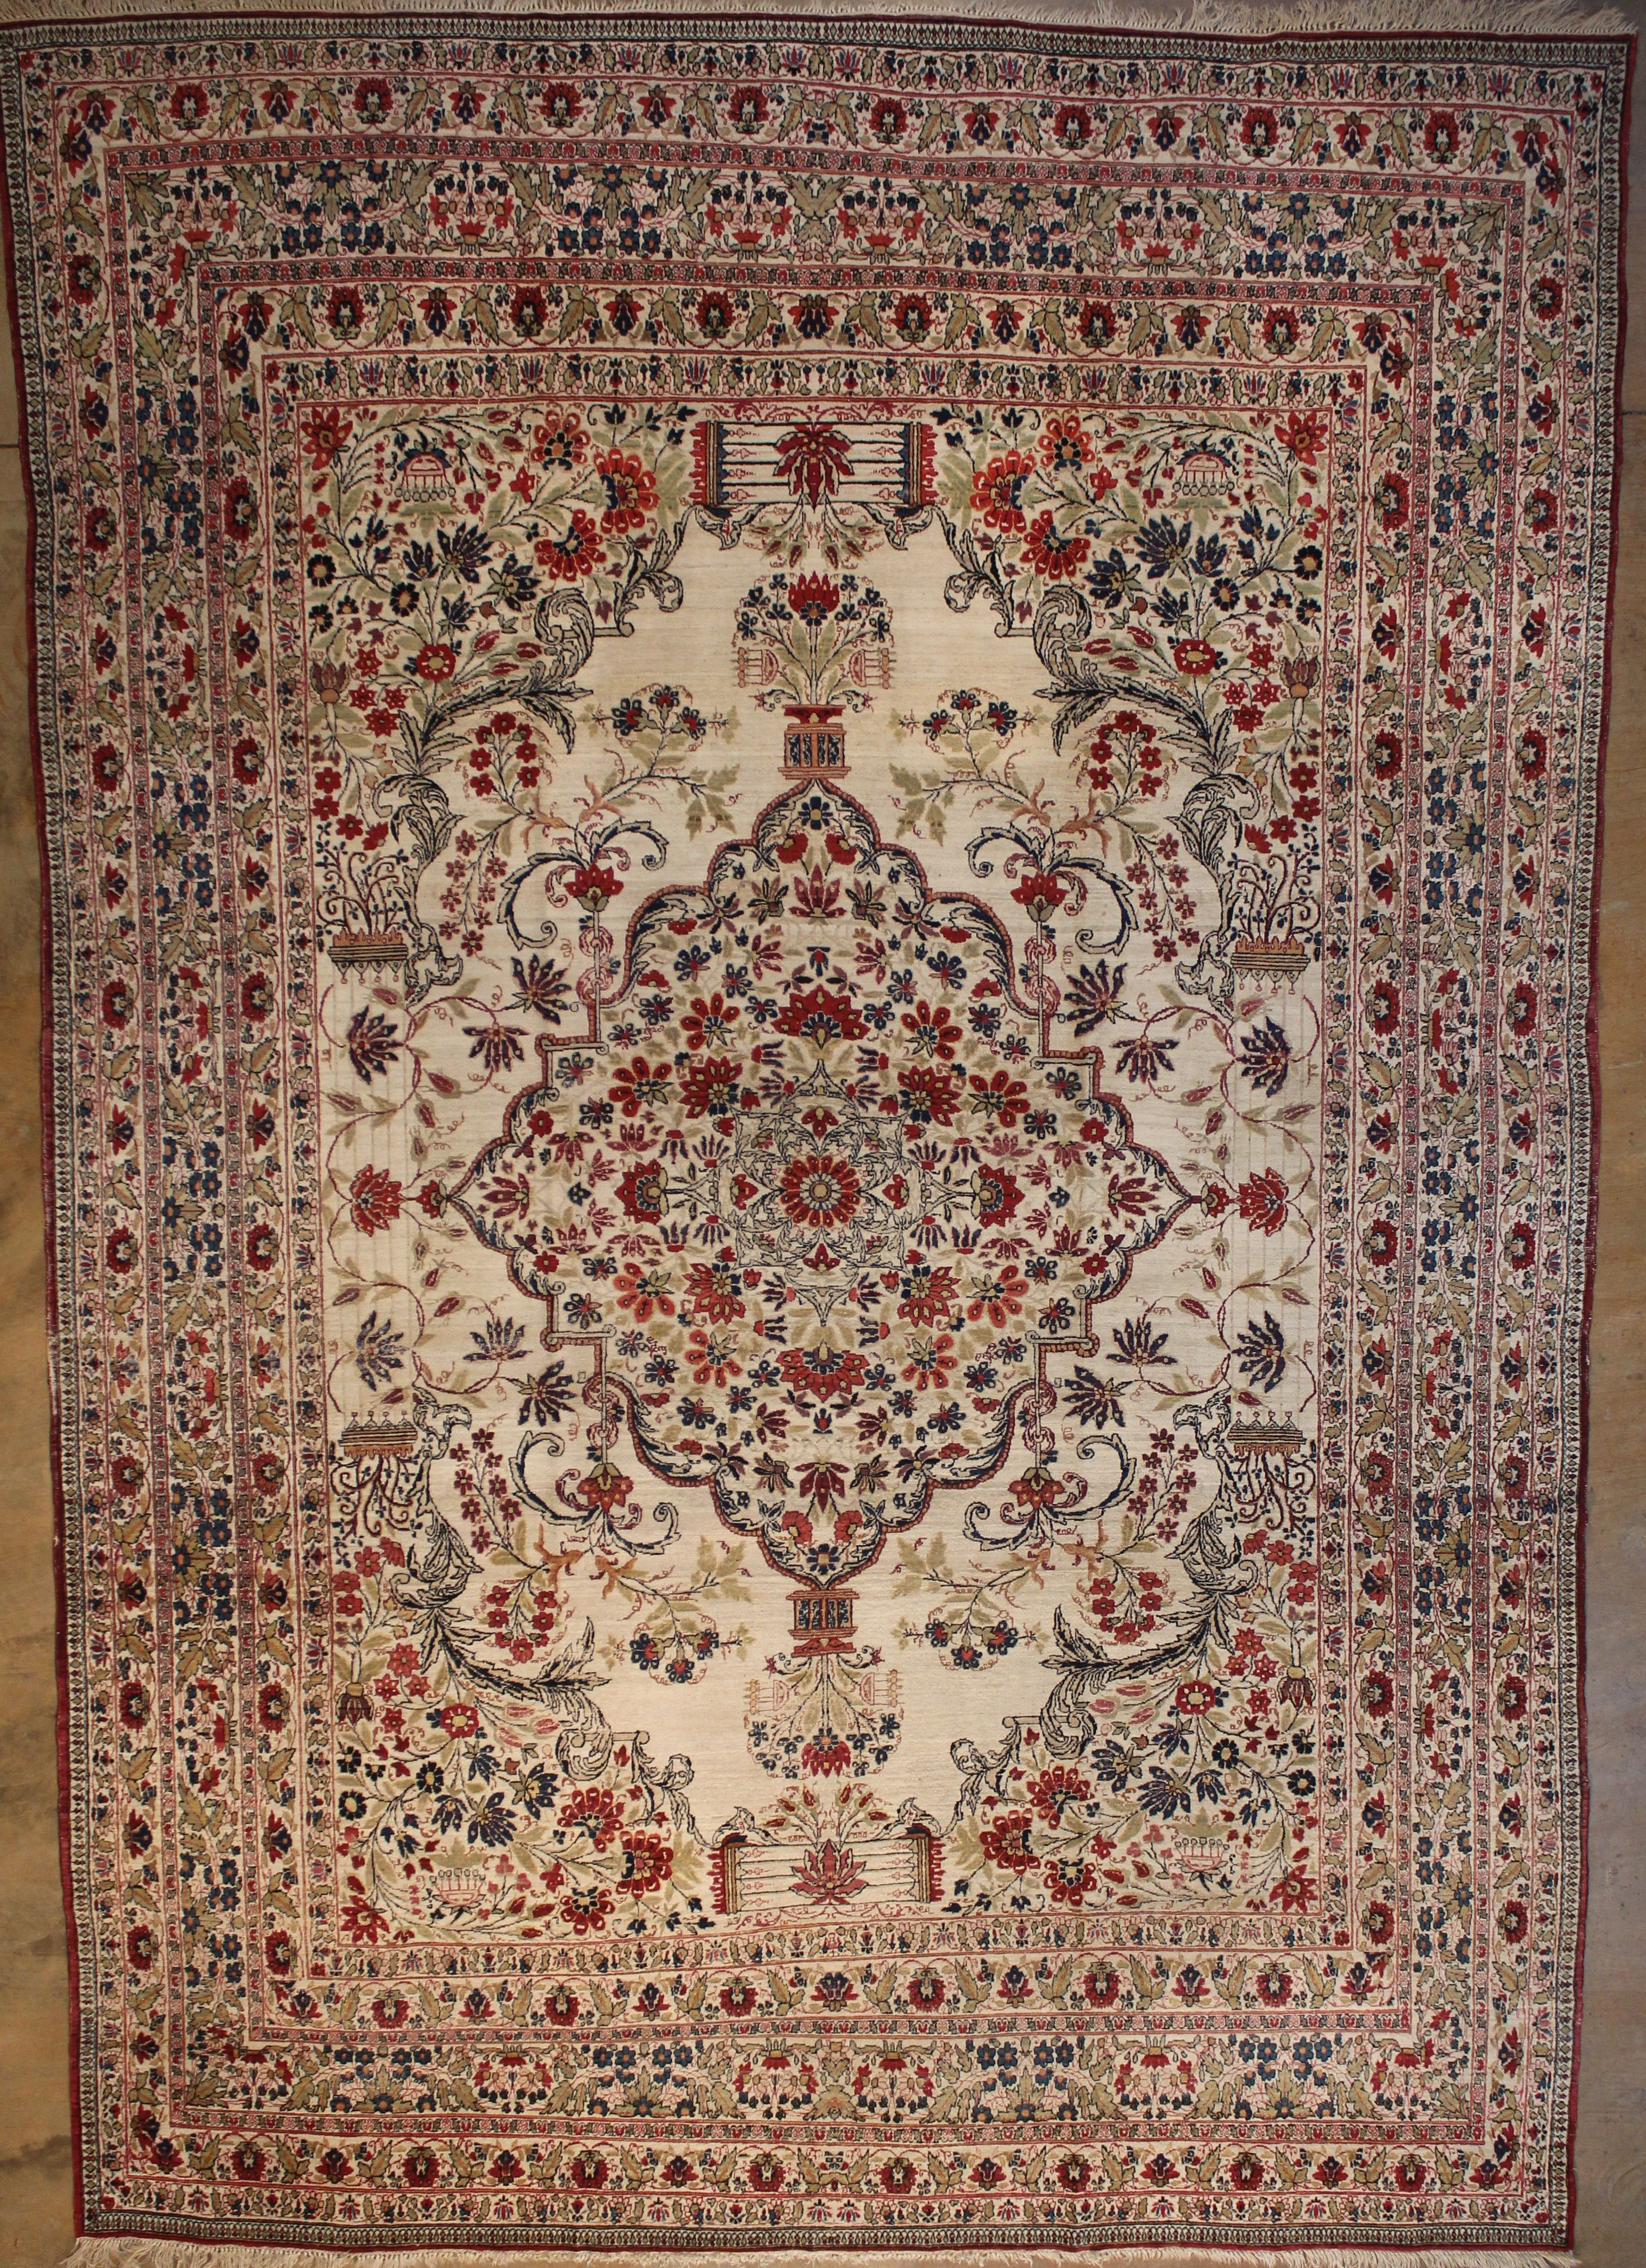 Fr5634 Antique Persian Kerman Rugs Home Decor Antique Rugs Farzin Rugs Dallas Tx Indian Rugs Antique Rugs Rugs